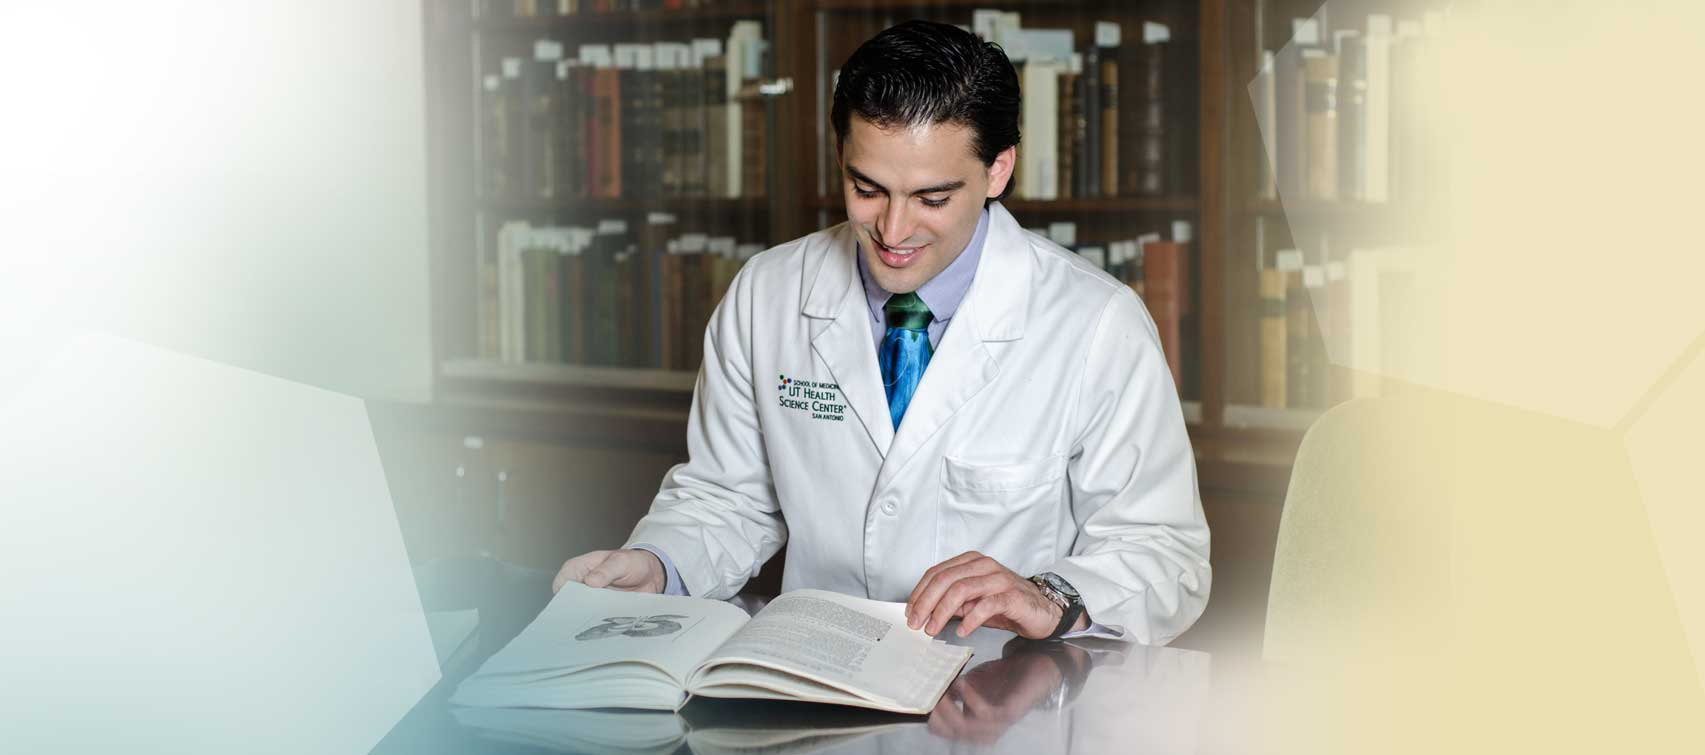 MD/PhD Student Eithan Kotkowski, says UT Health Science Center is a great place to study.